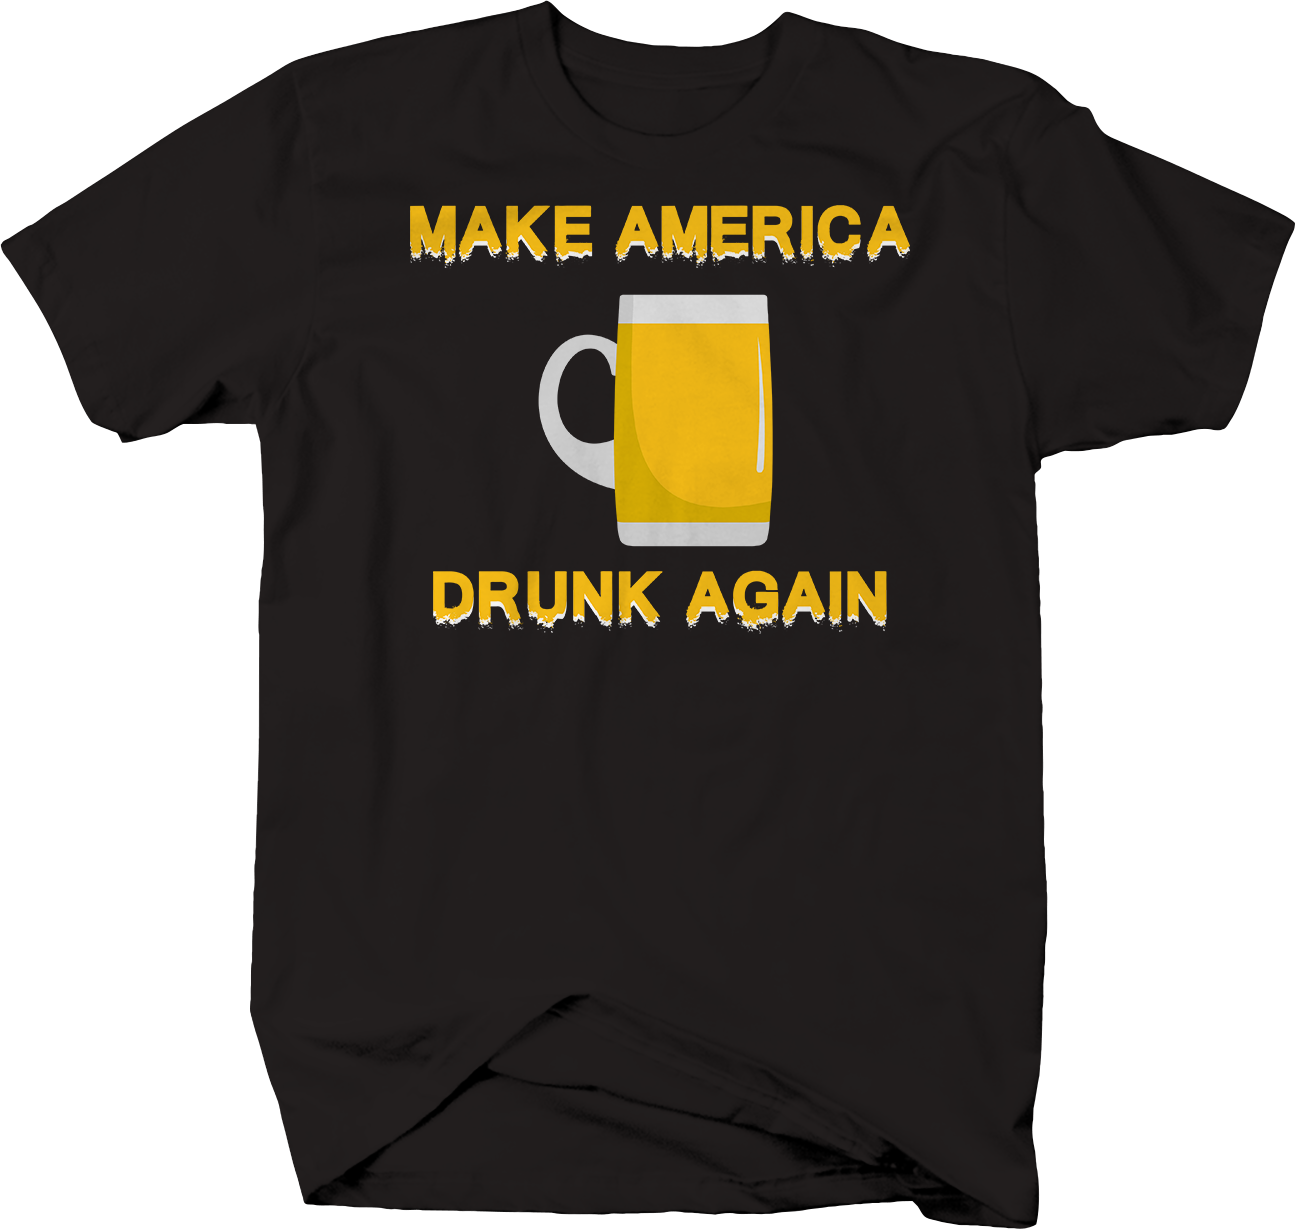 Make America Drunk Again Beer Drinking Trump College T-Shirt Men's Funny Tees image